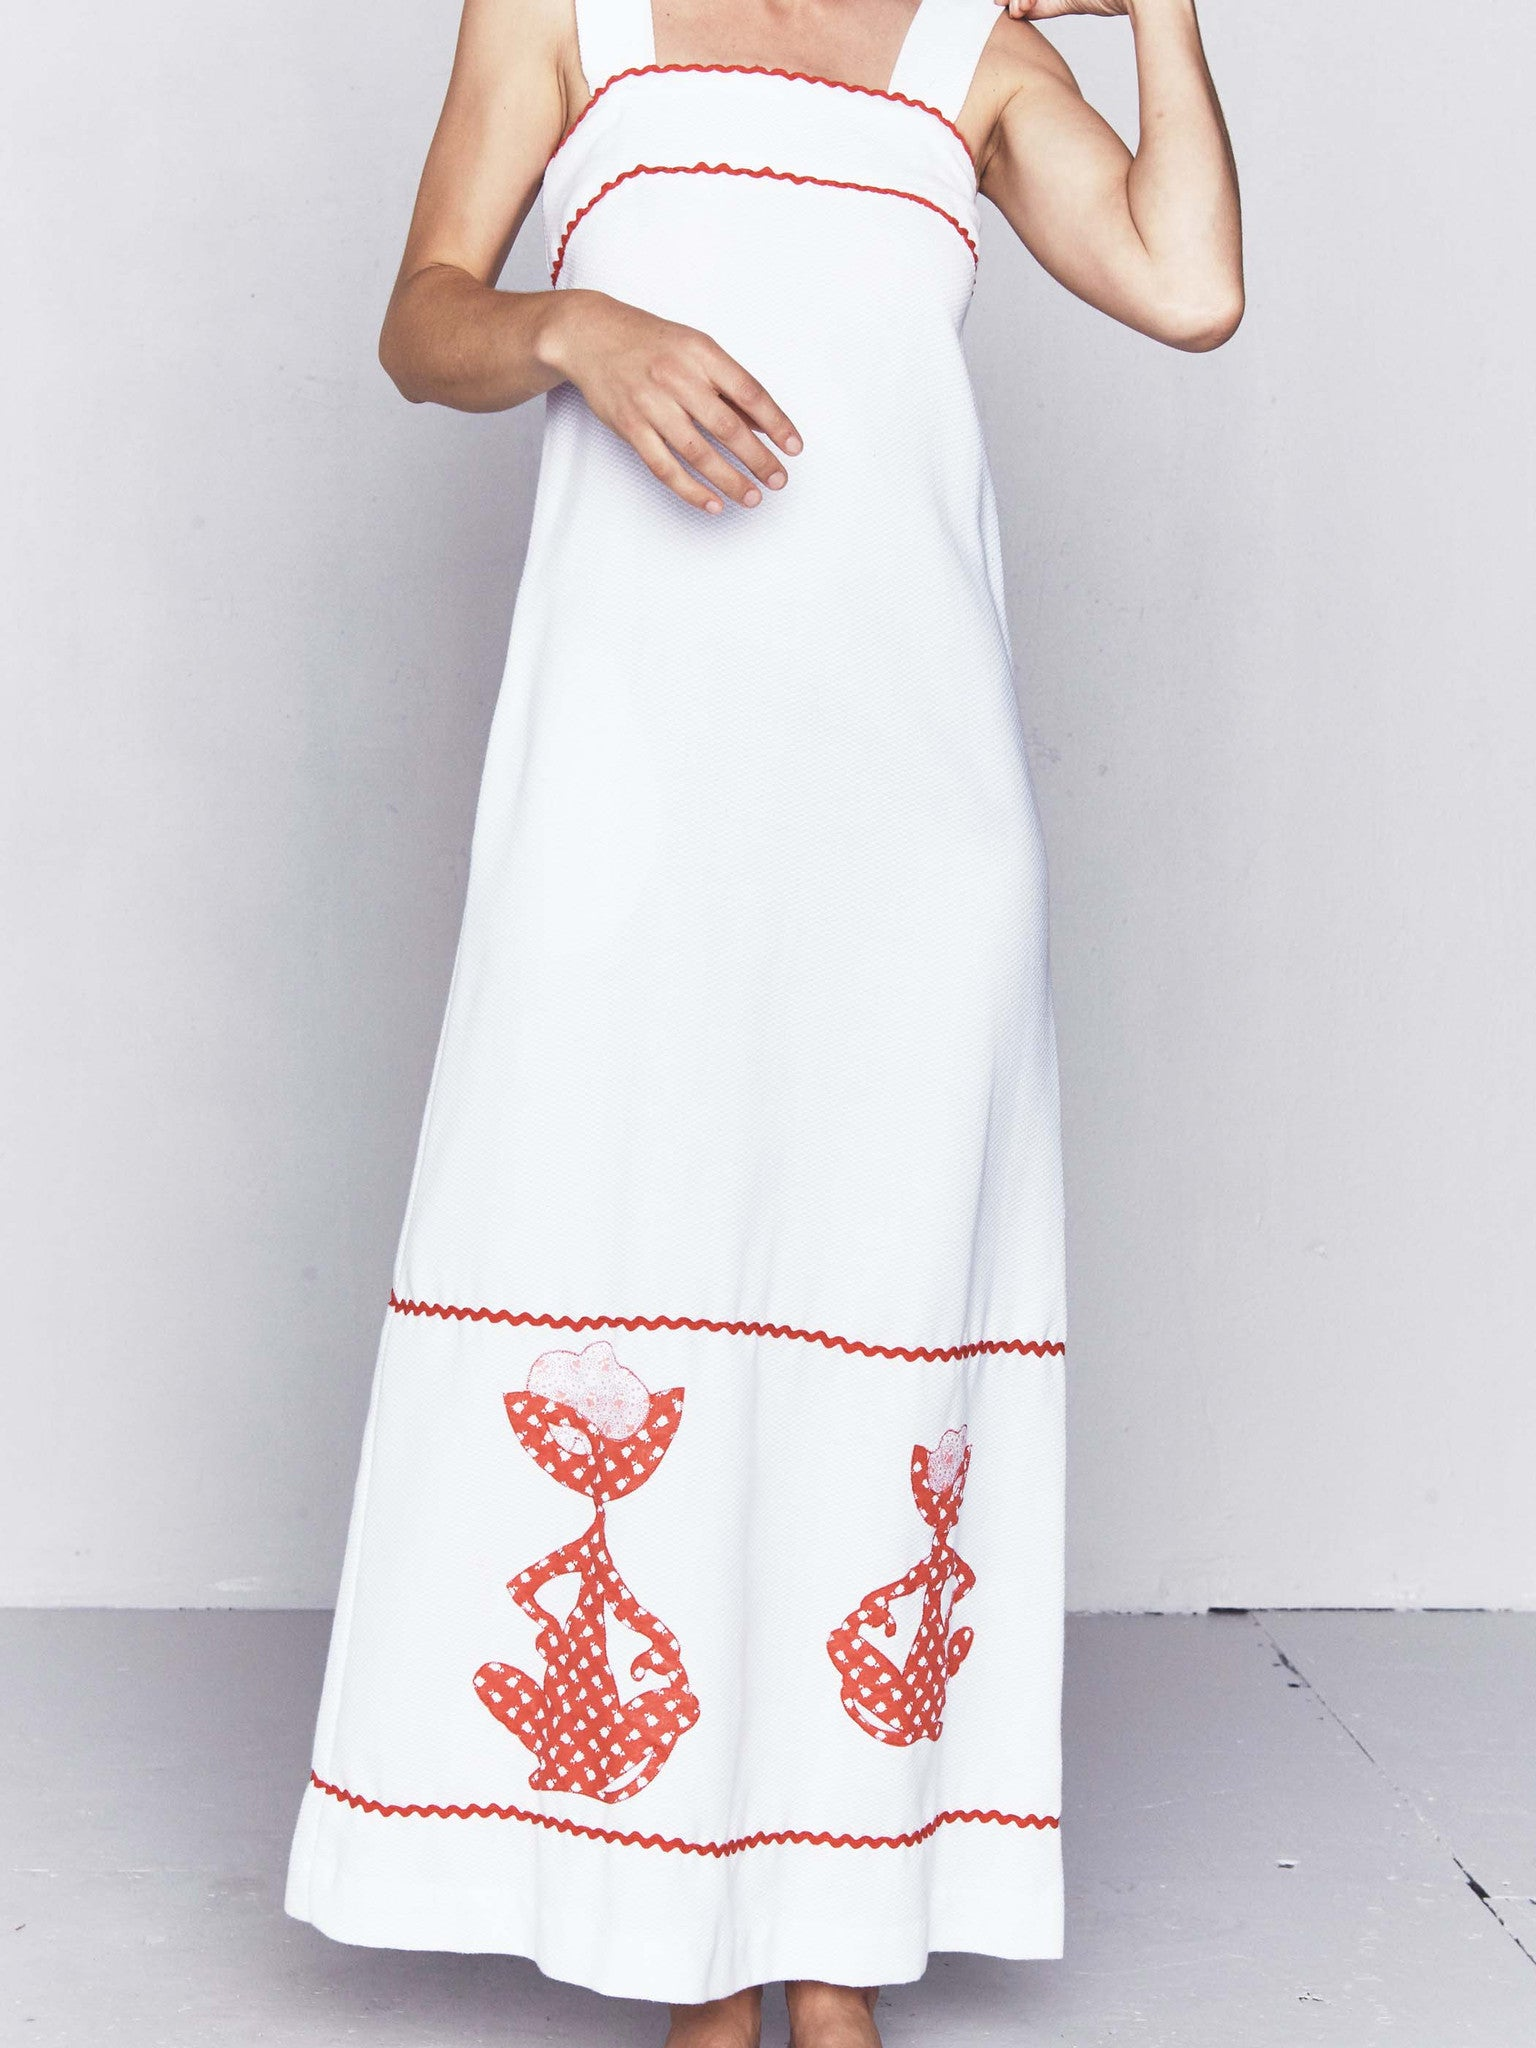 Vintage 1960s White Piqué Maxi Dress with Cat Appliqué and Ric-Rac Trim